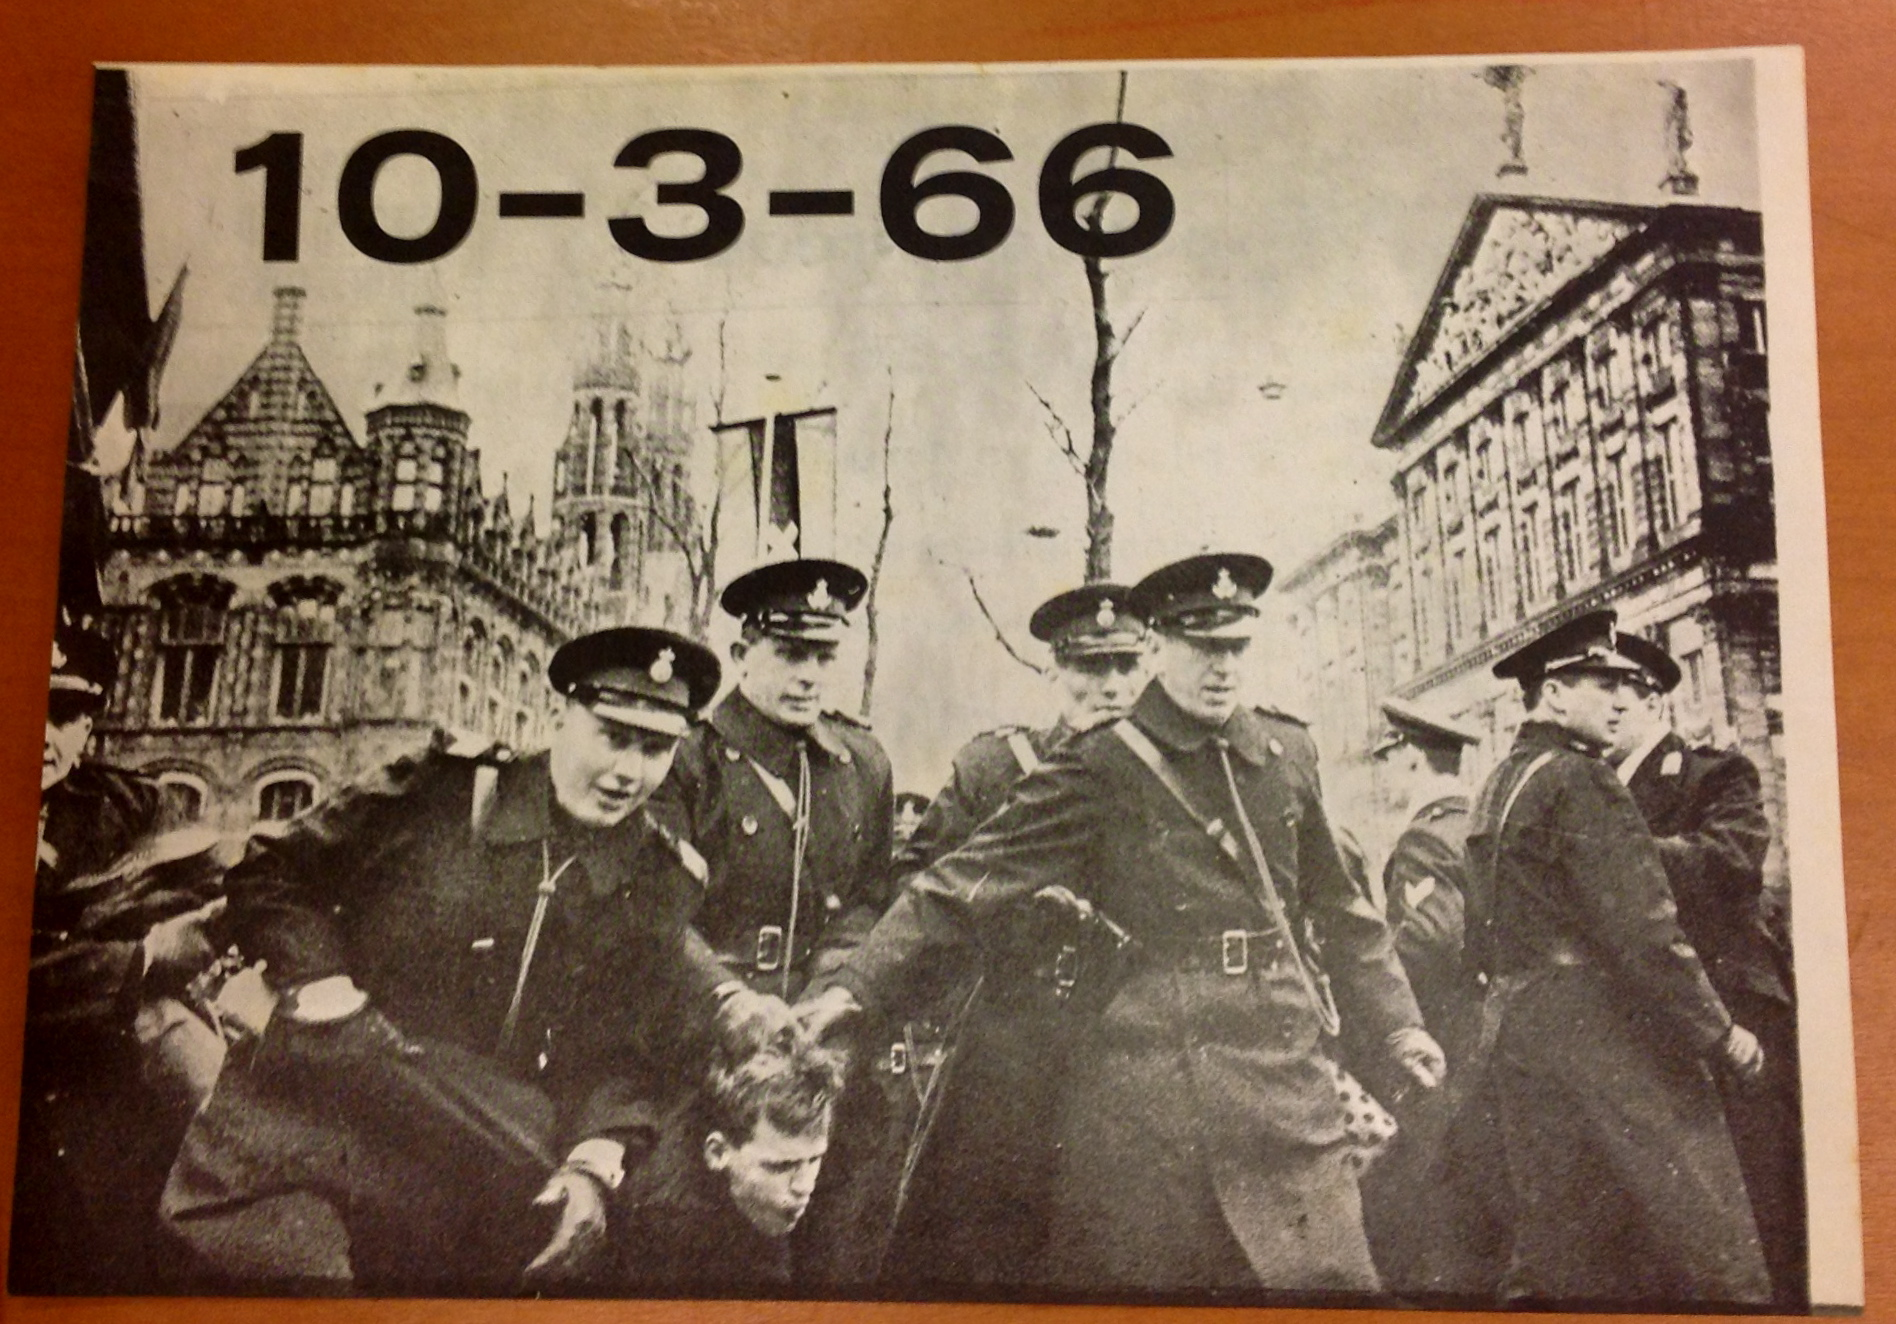 10 march '66